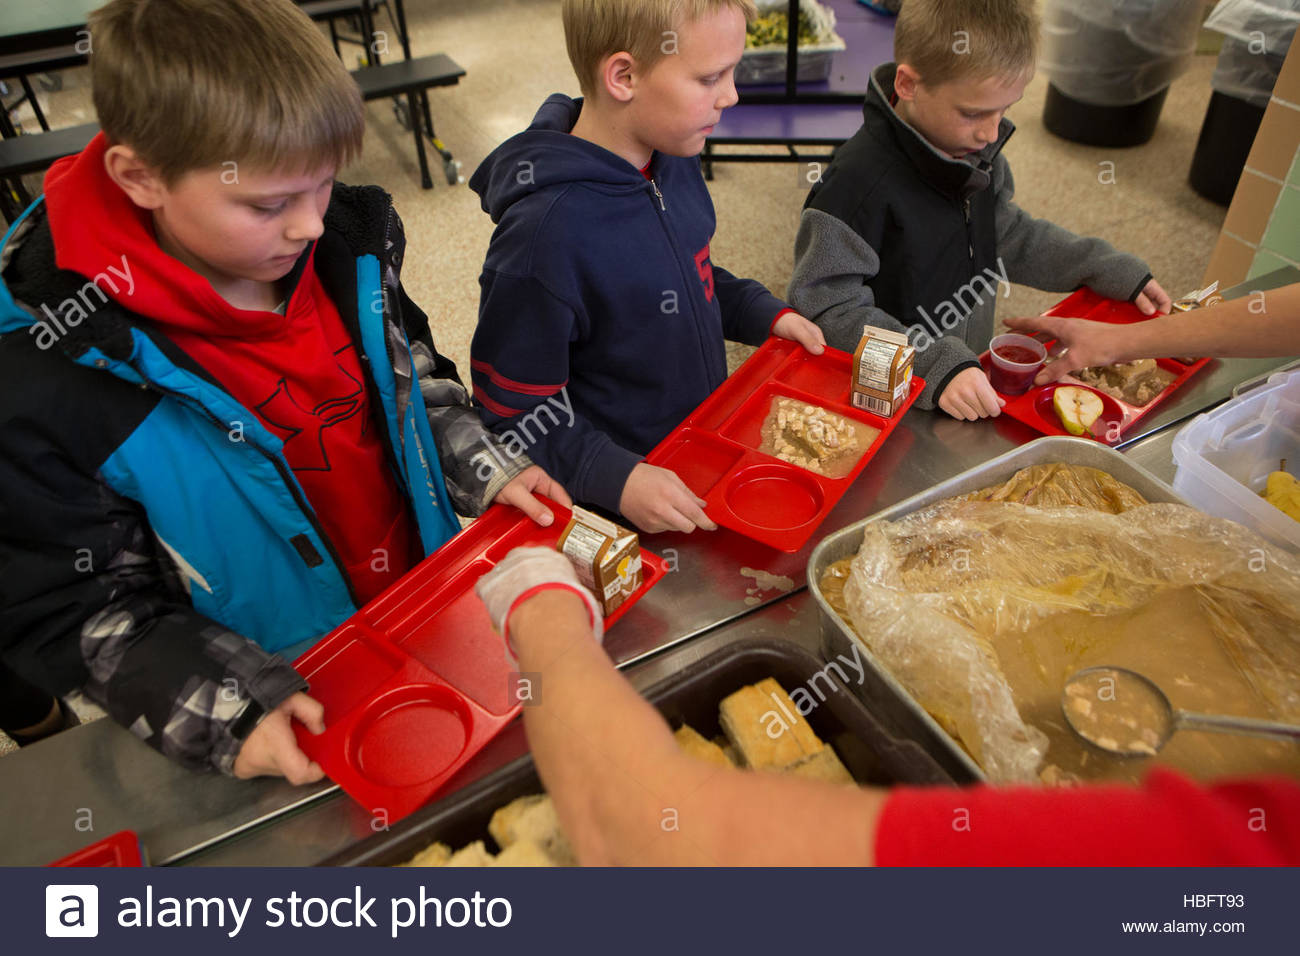 Elementary school students receive free lunch provided by the school. - Stock Image